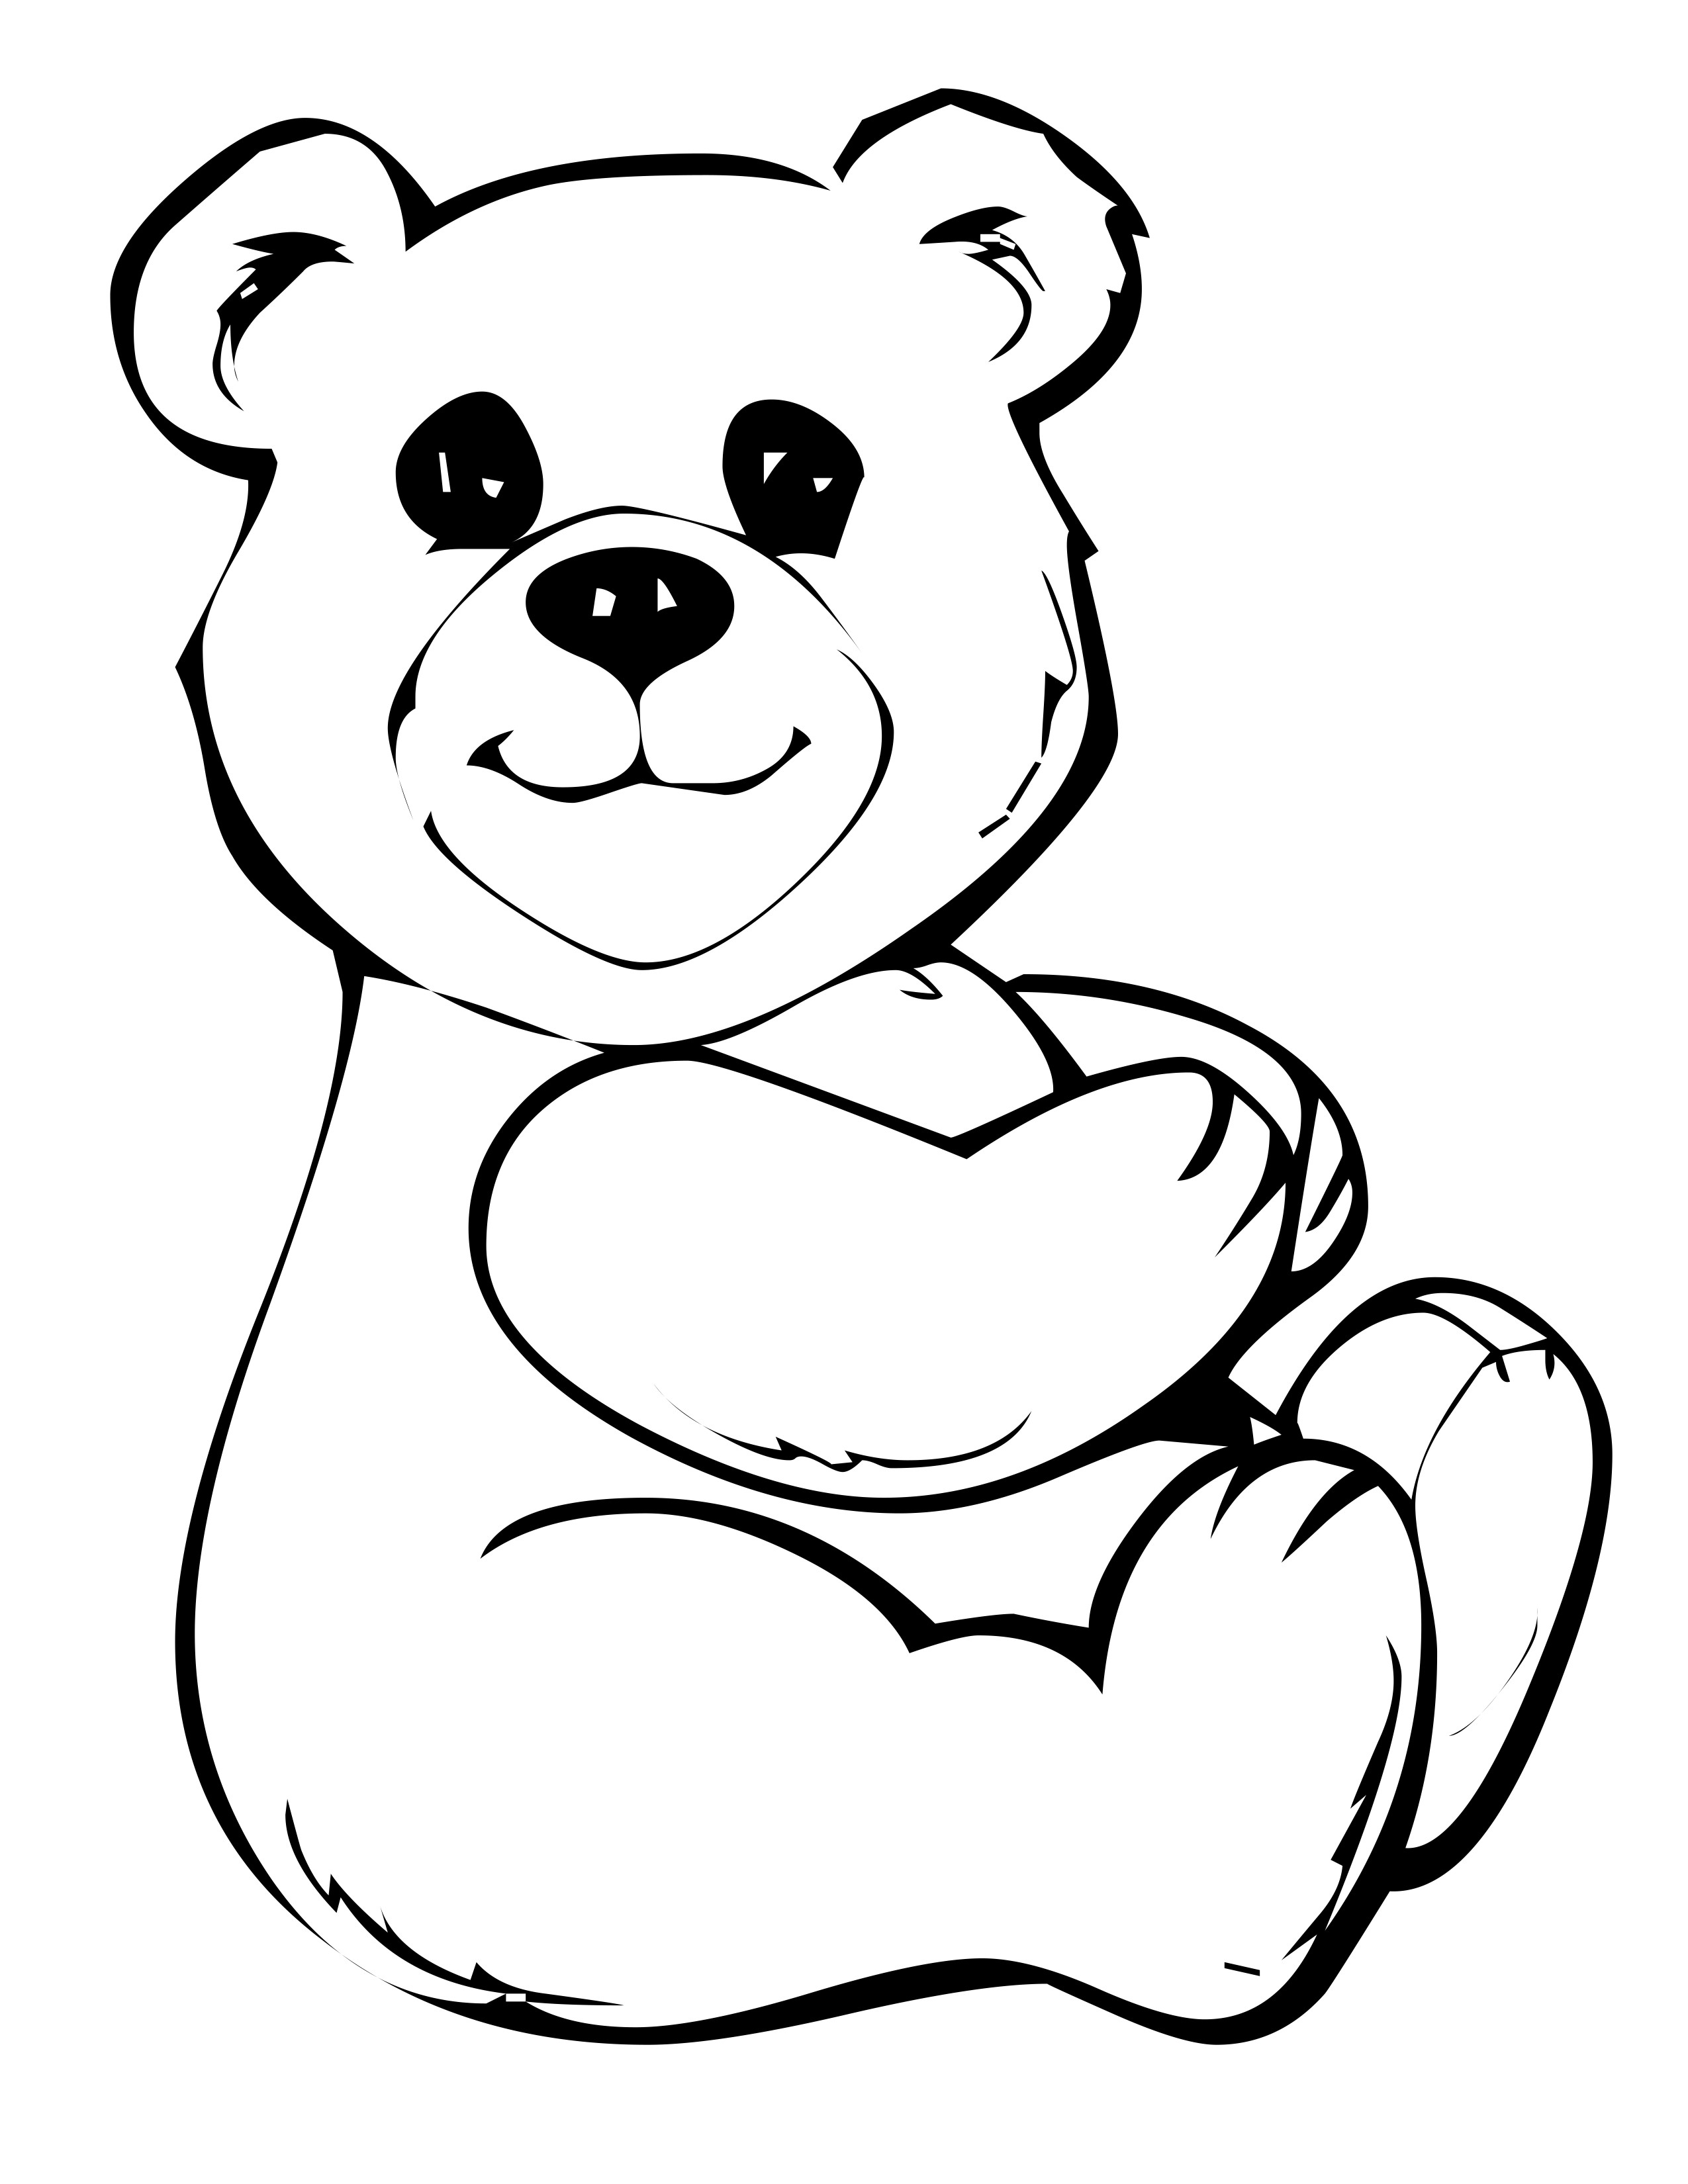 coloring pages of bears free bear coloring pages coloring bears pages of